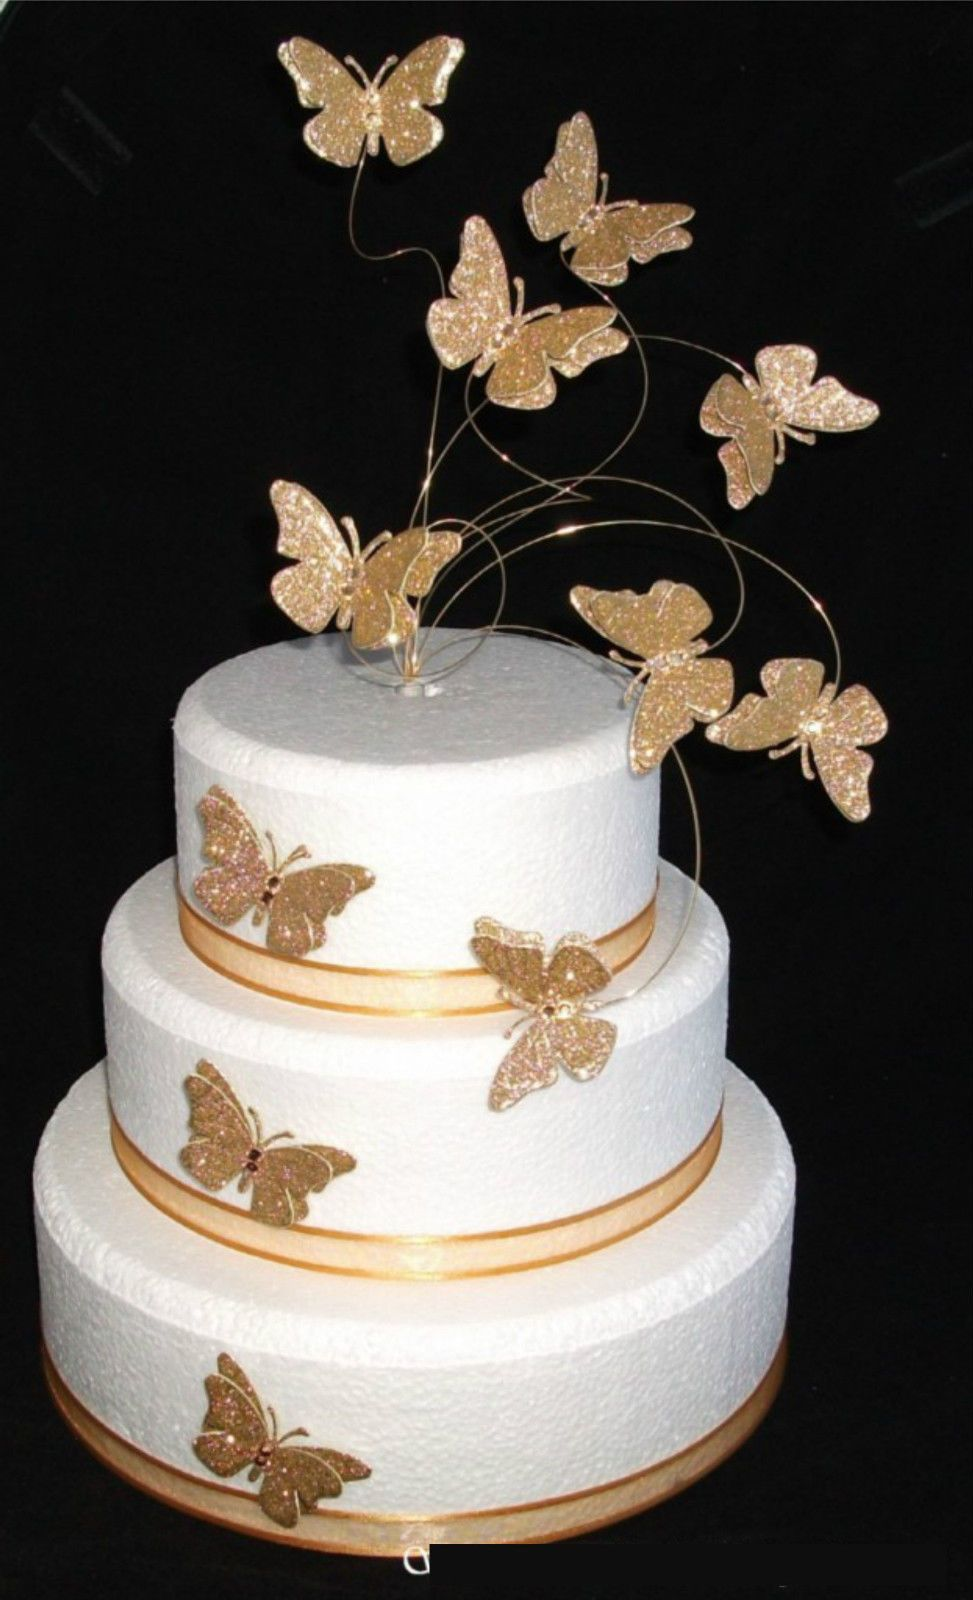 Superb Golden Silver Erfly Cake Toppers Wedding Birthday Anniversary Ebay Designs